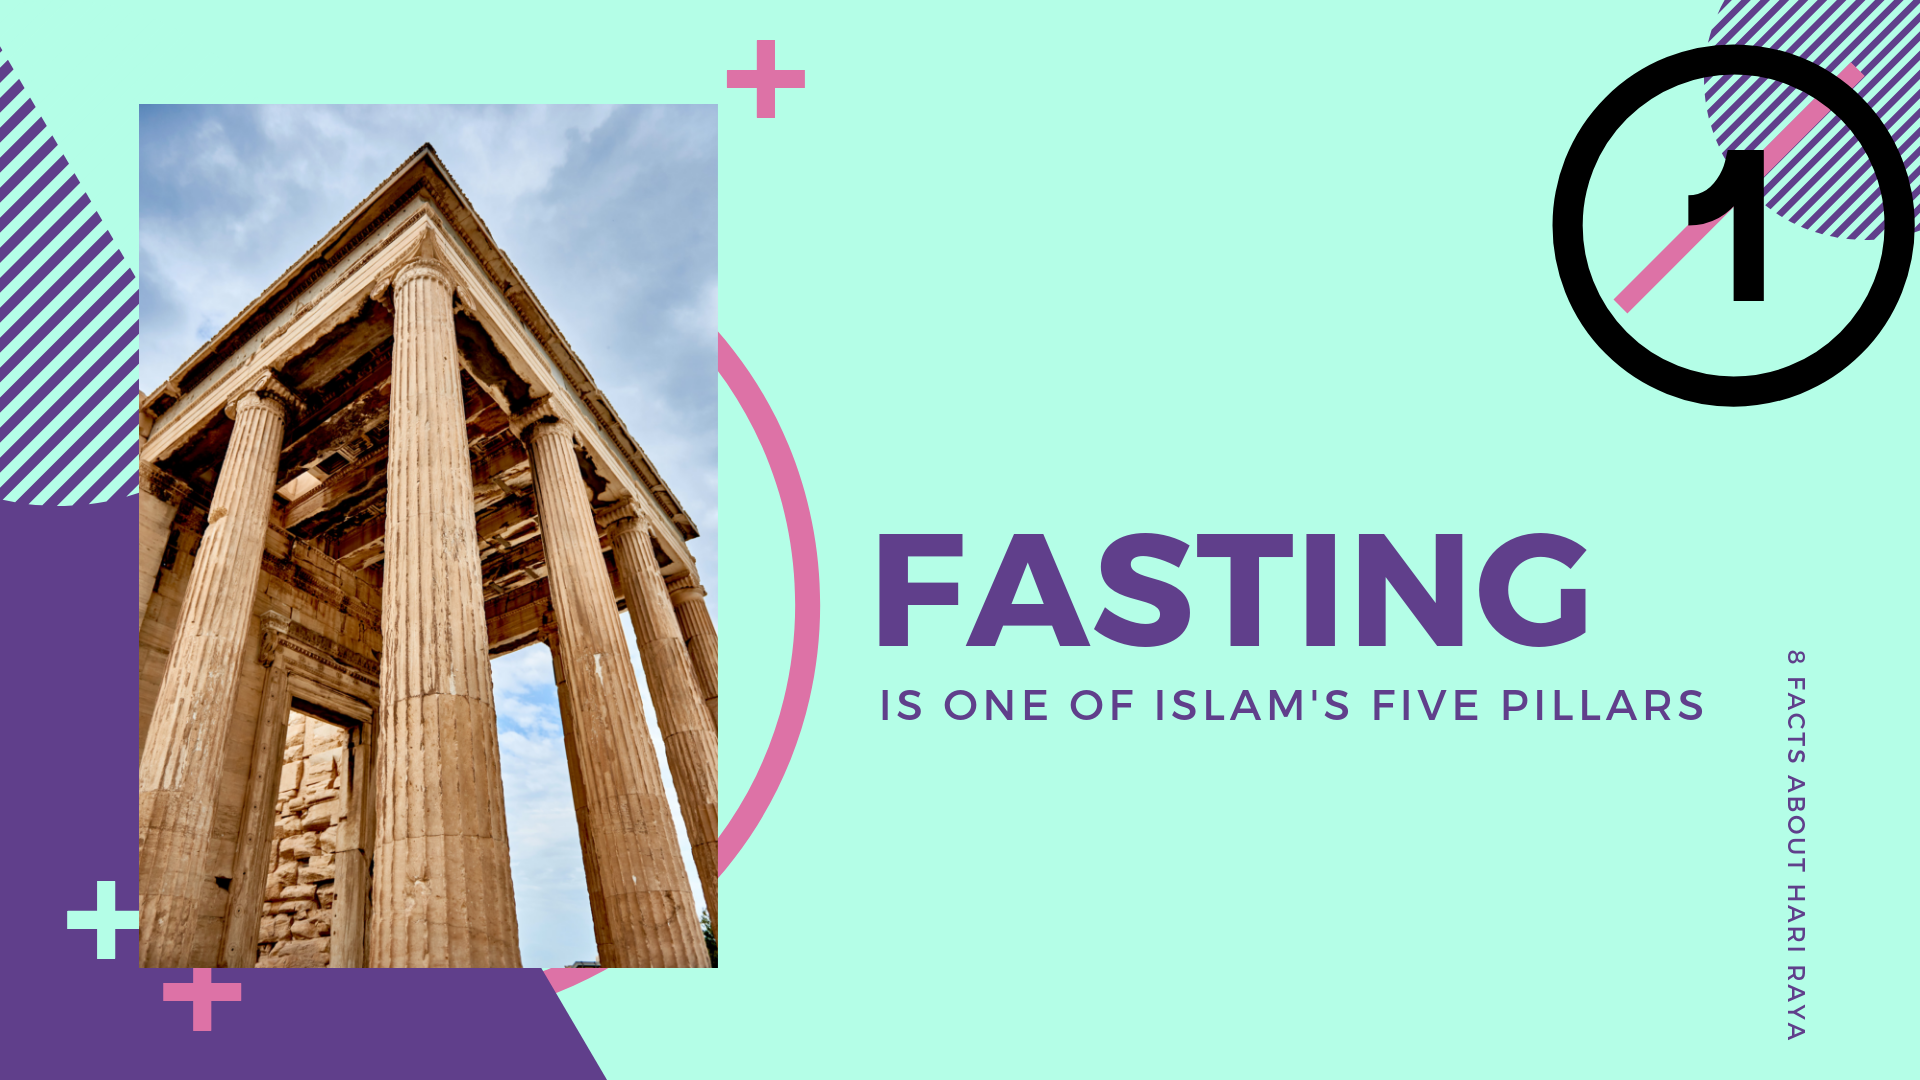 8 interesting facts about hari raya - fasting is one of five pillars